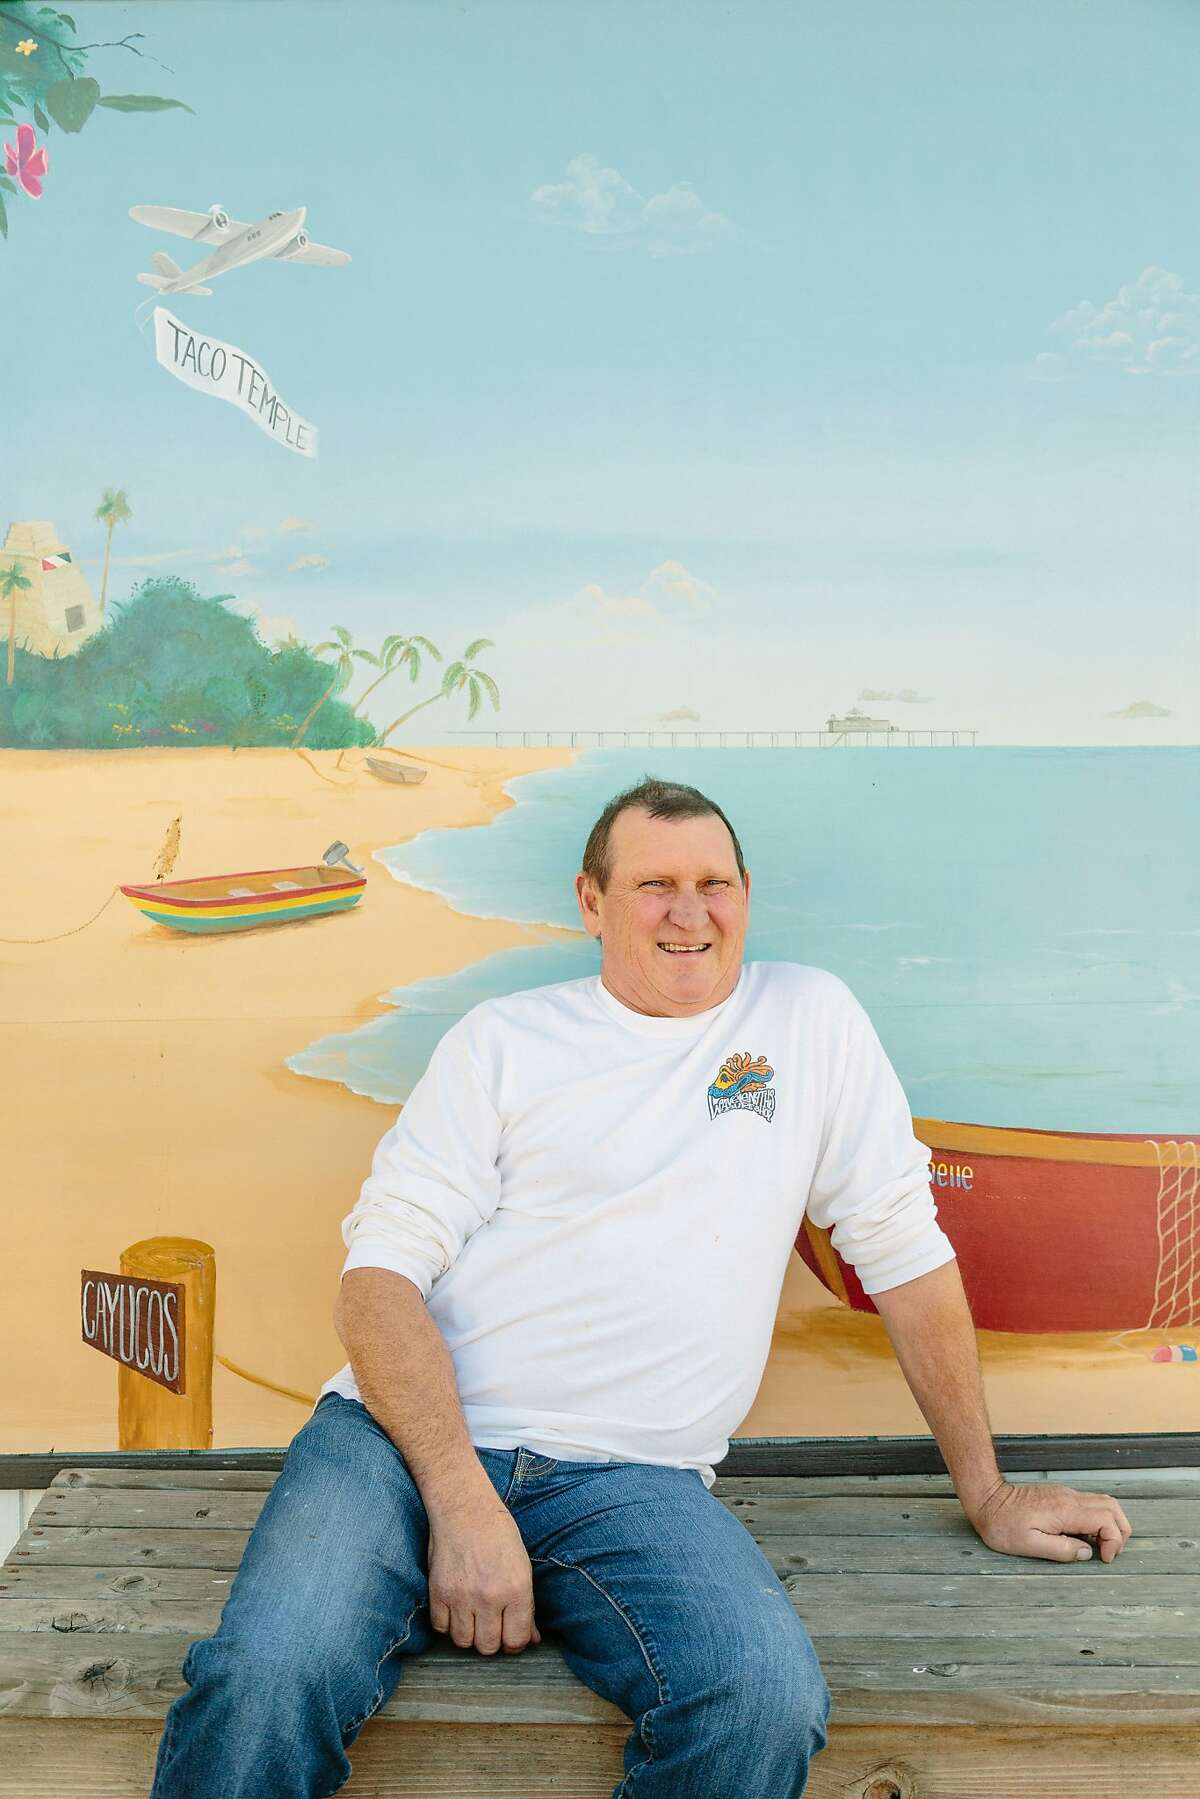 Owner Jim League at Taco Temple in Morro Bay, Calif., Wednesday, December 23, 2015.